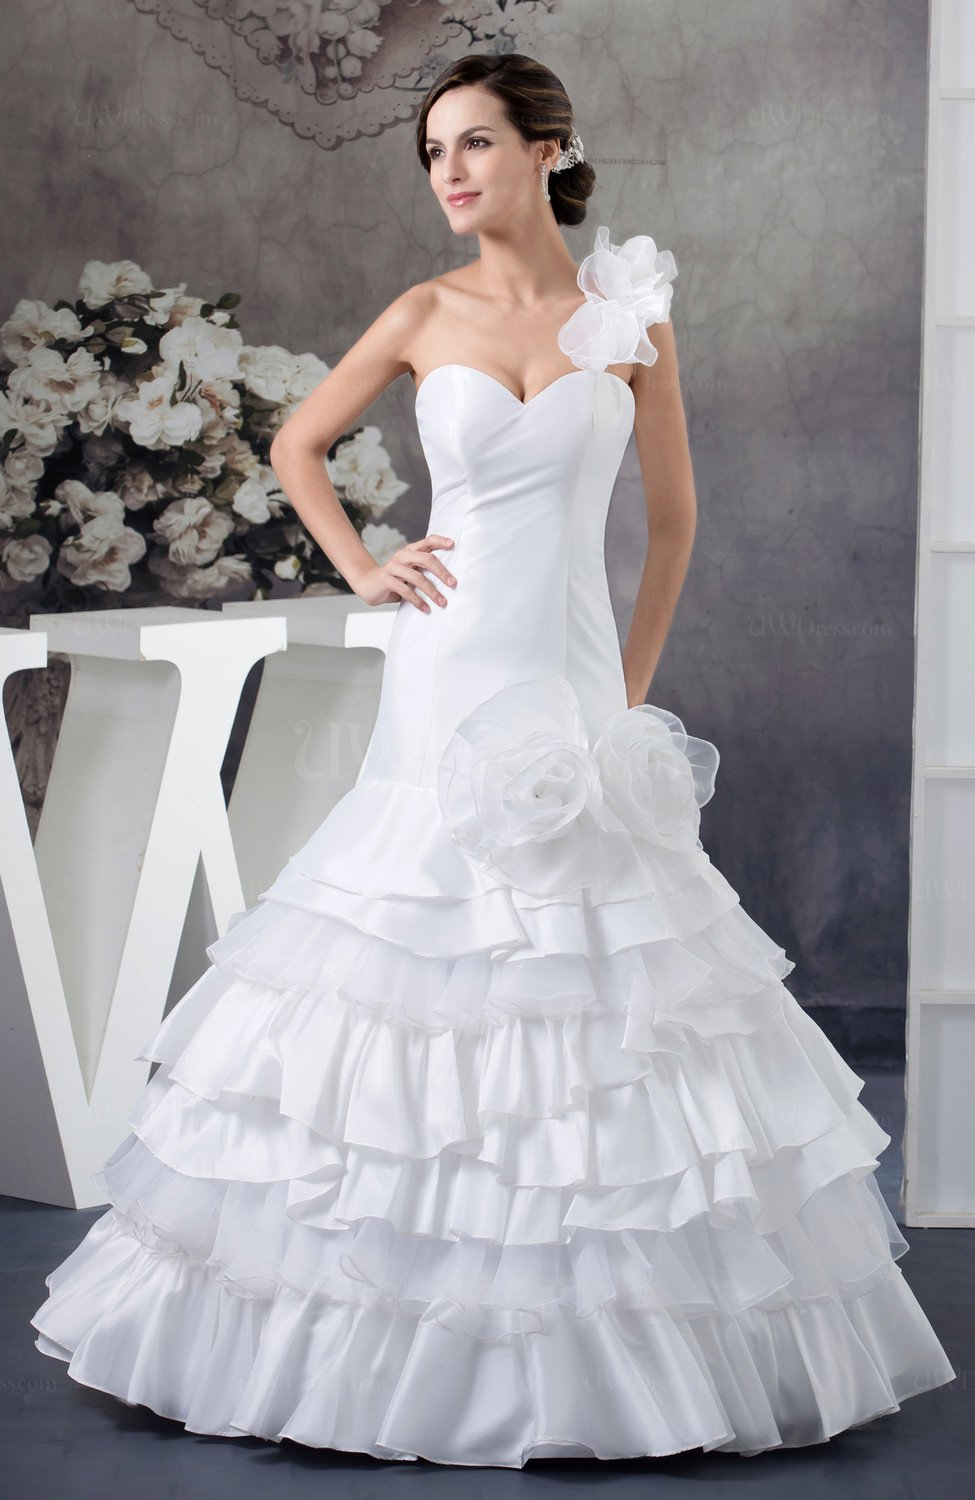 Glamorous Bridal Gowns Formal Spring Trumpet Fall Petite ...